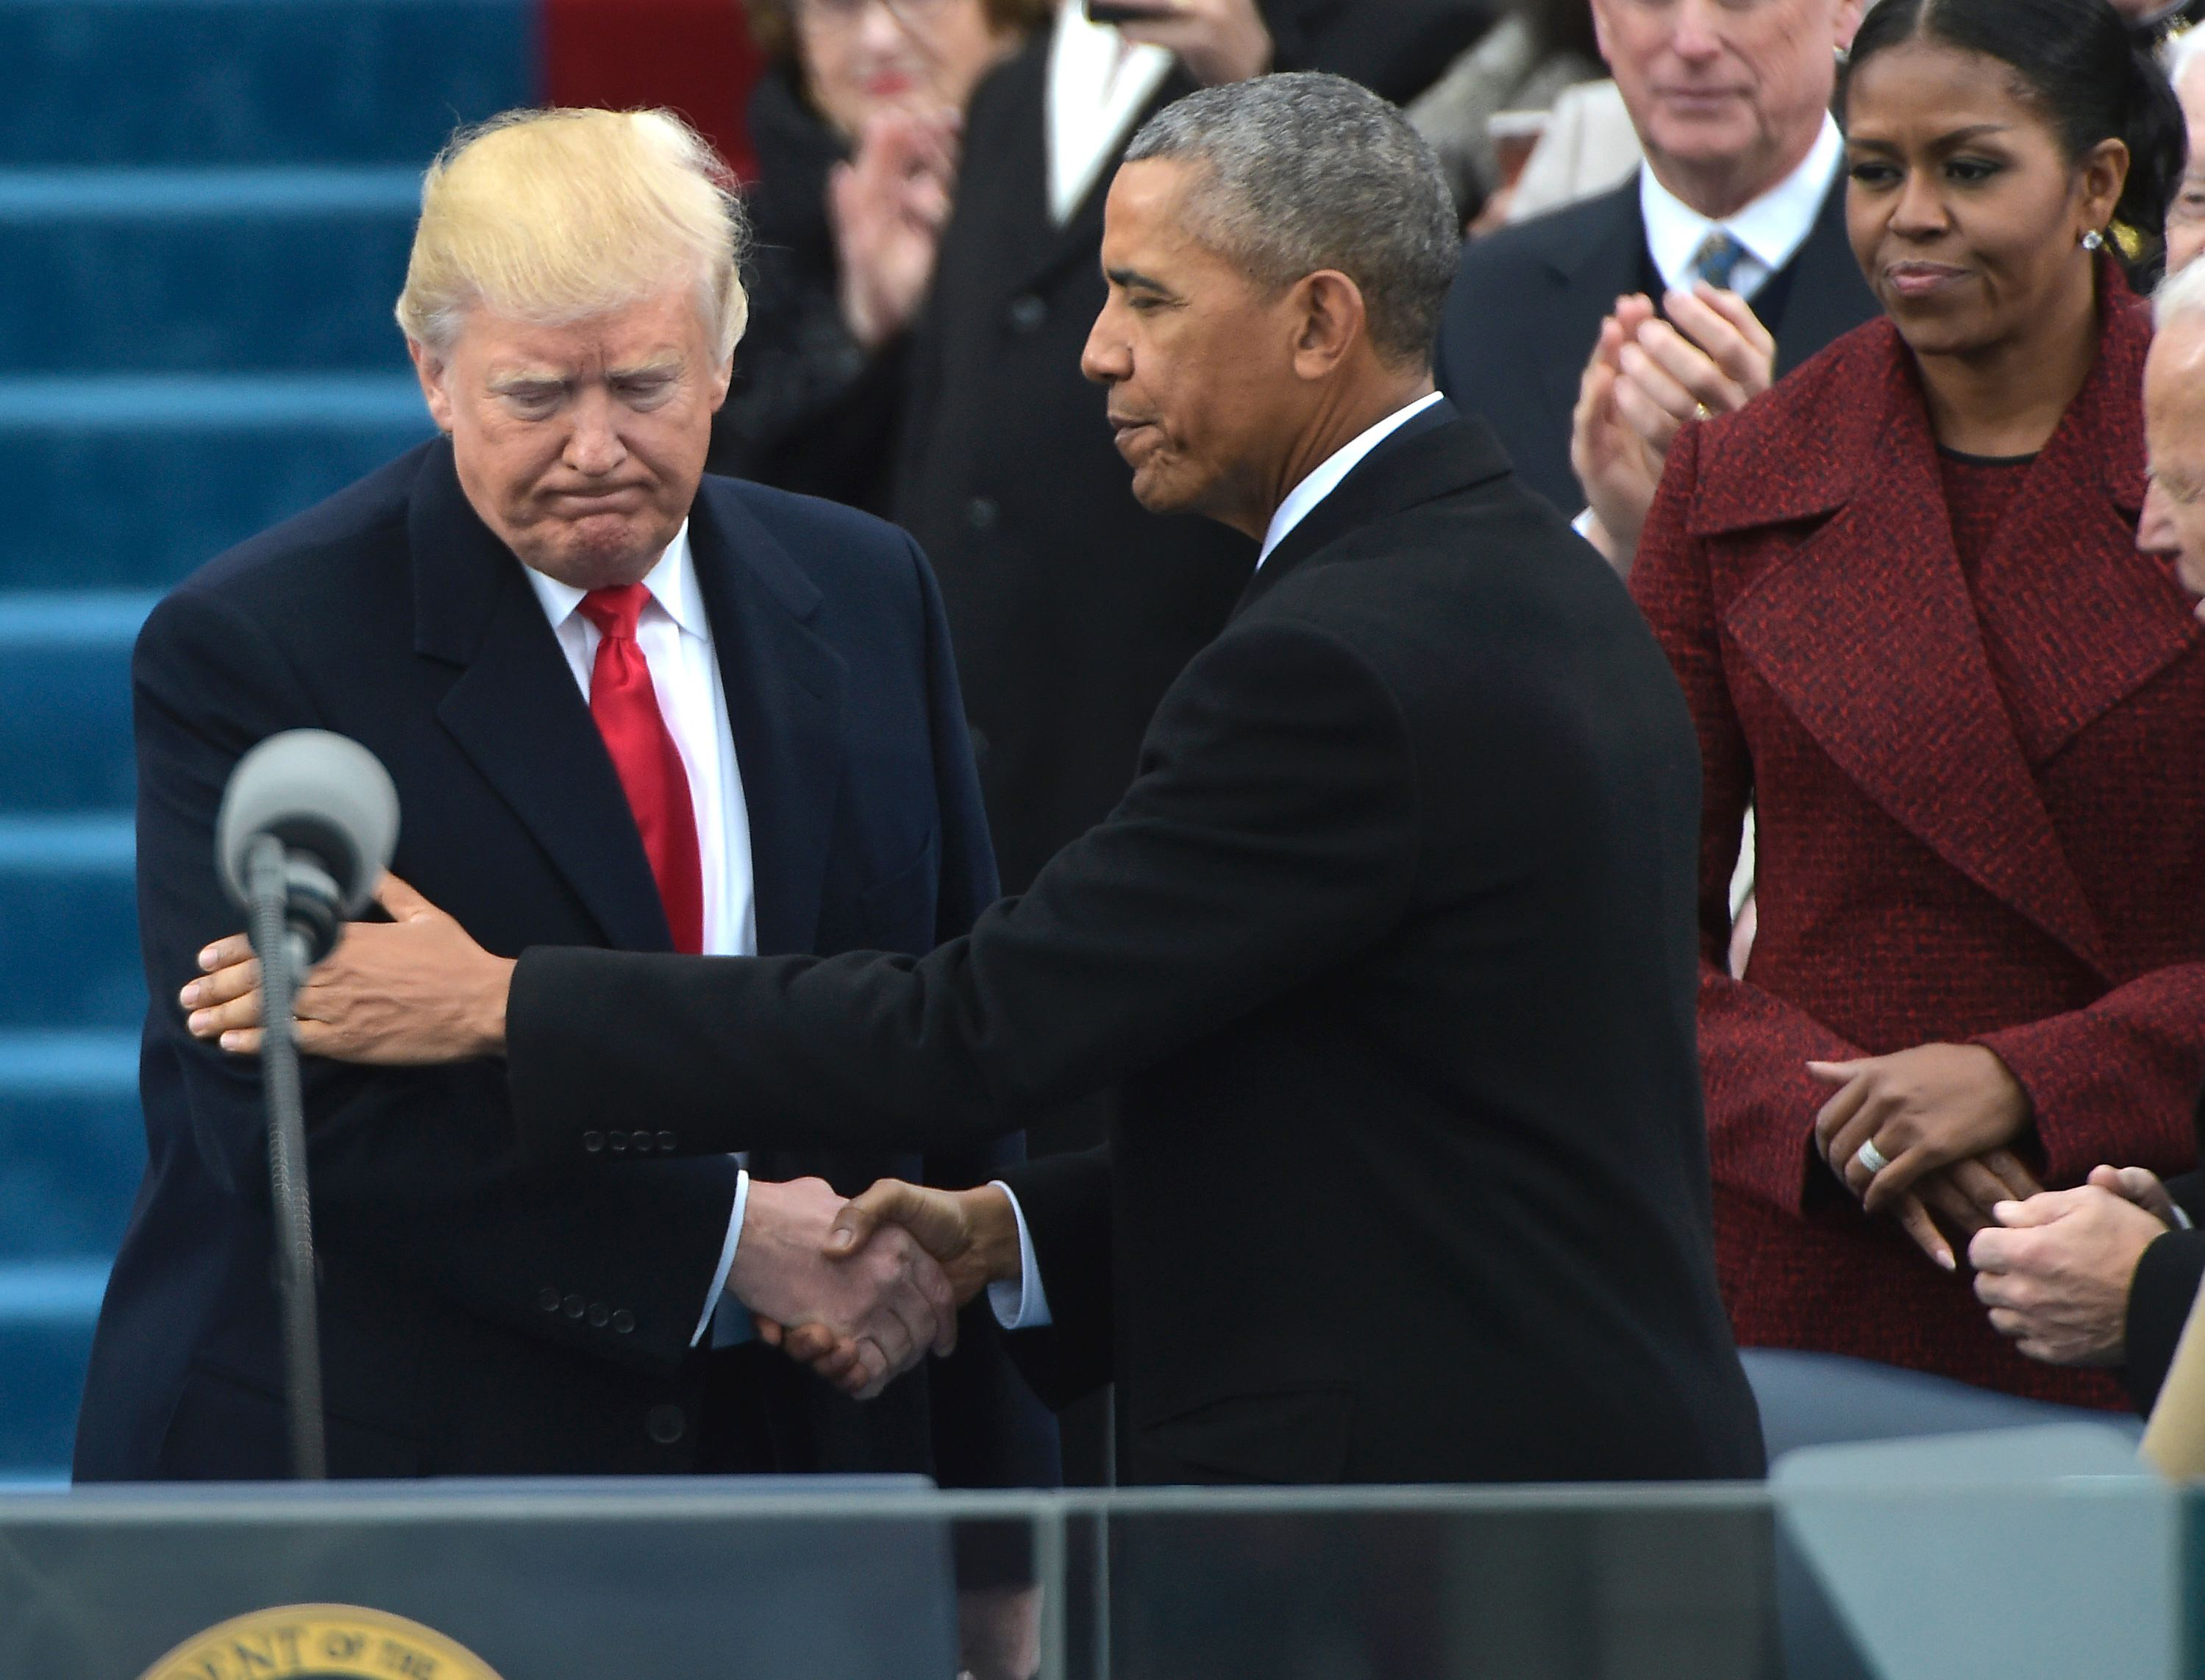 US President Barack Obama (R) greets President-elect Donald Trump as he arrives on the platform at the US Capitol in Washington, DC, on January 20, 2017, before his swearing-in ceremony. / AFP / Mandel NGAN (Photo credit should read MANDEL NGAN/AFP/Getty Images)